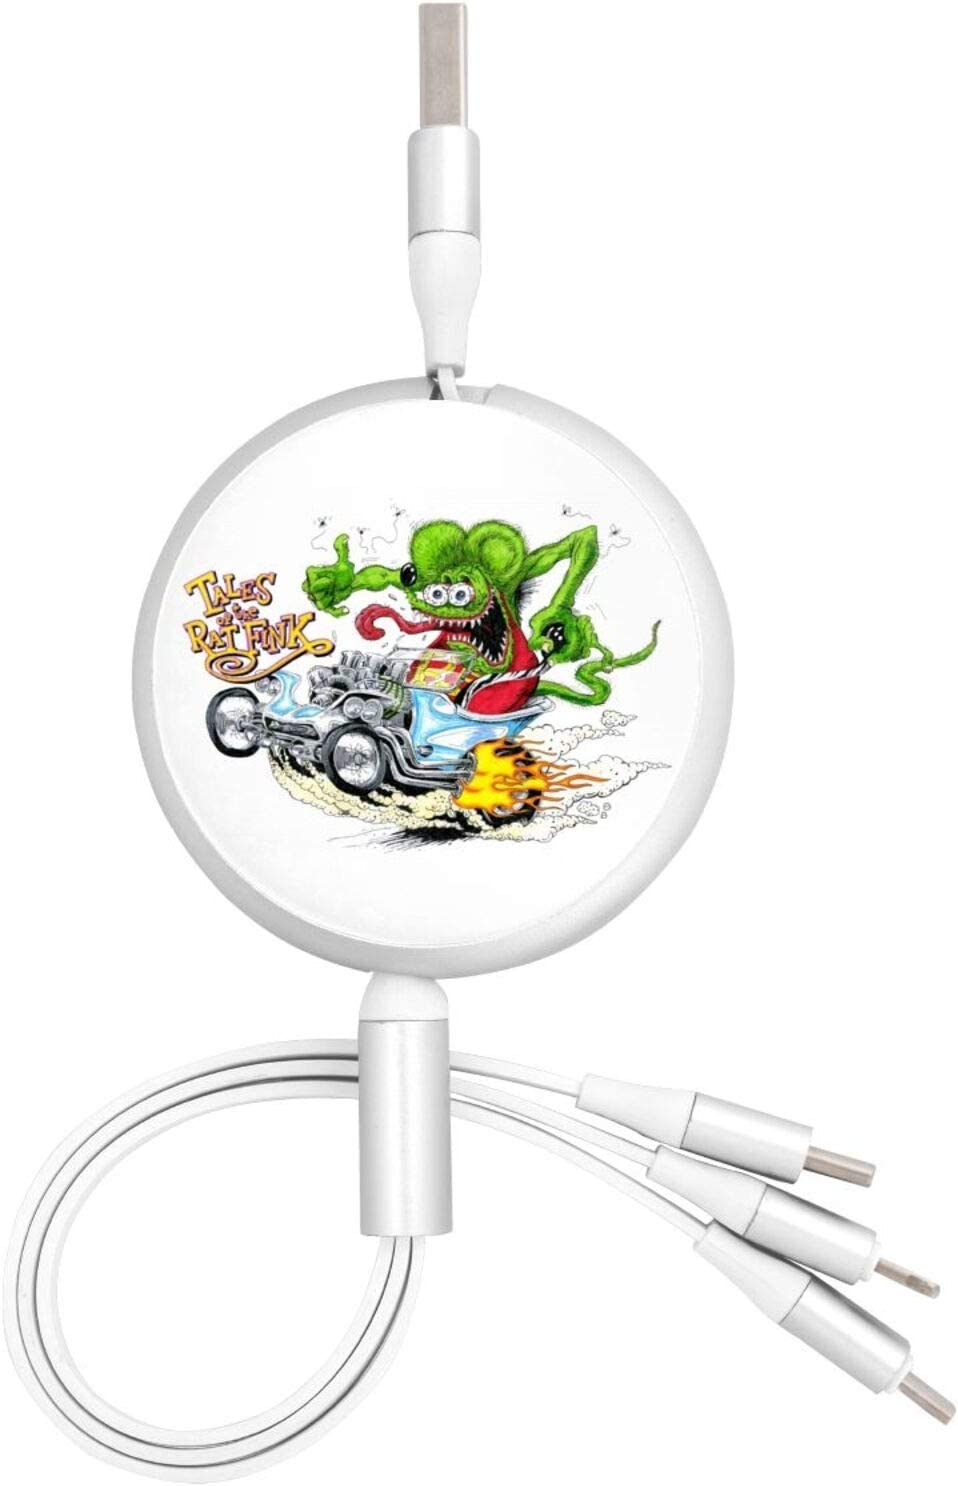 Fejarx Rat Fink4 Multi USB Retractable Charging Cable 4ft 3 in 1 Multiple Charger Cord Adapter Micro USB Port Compatible Cell Phones Tablets and More Universal Use B-1